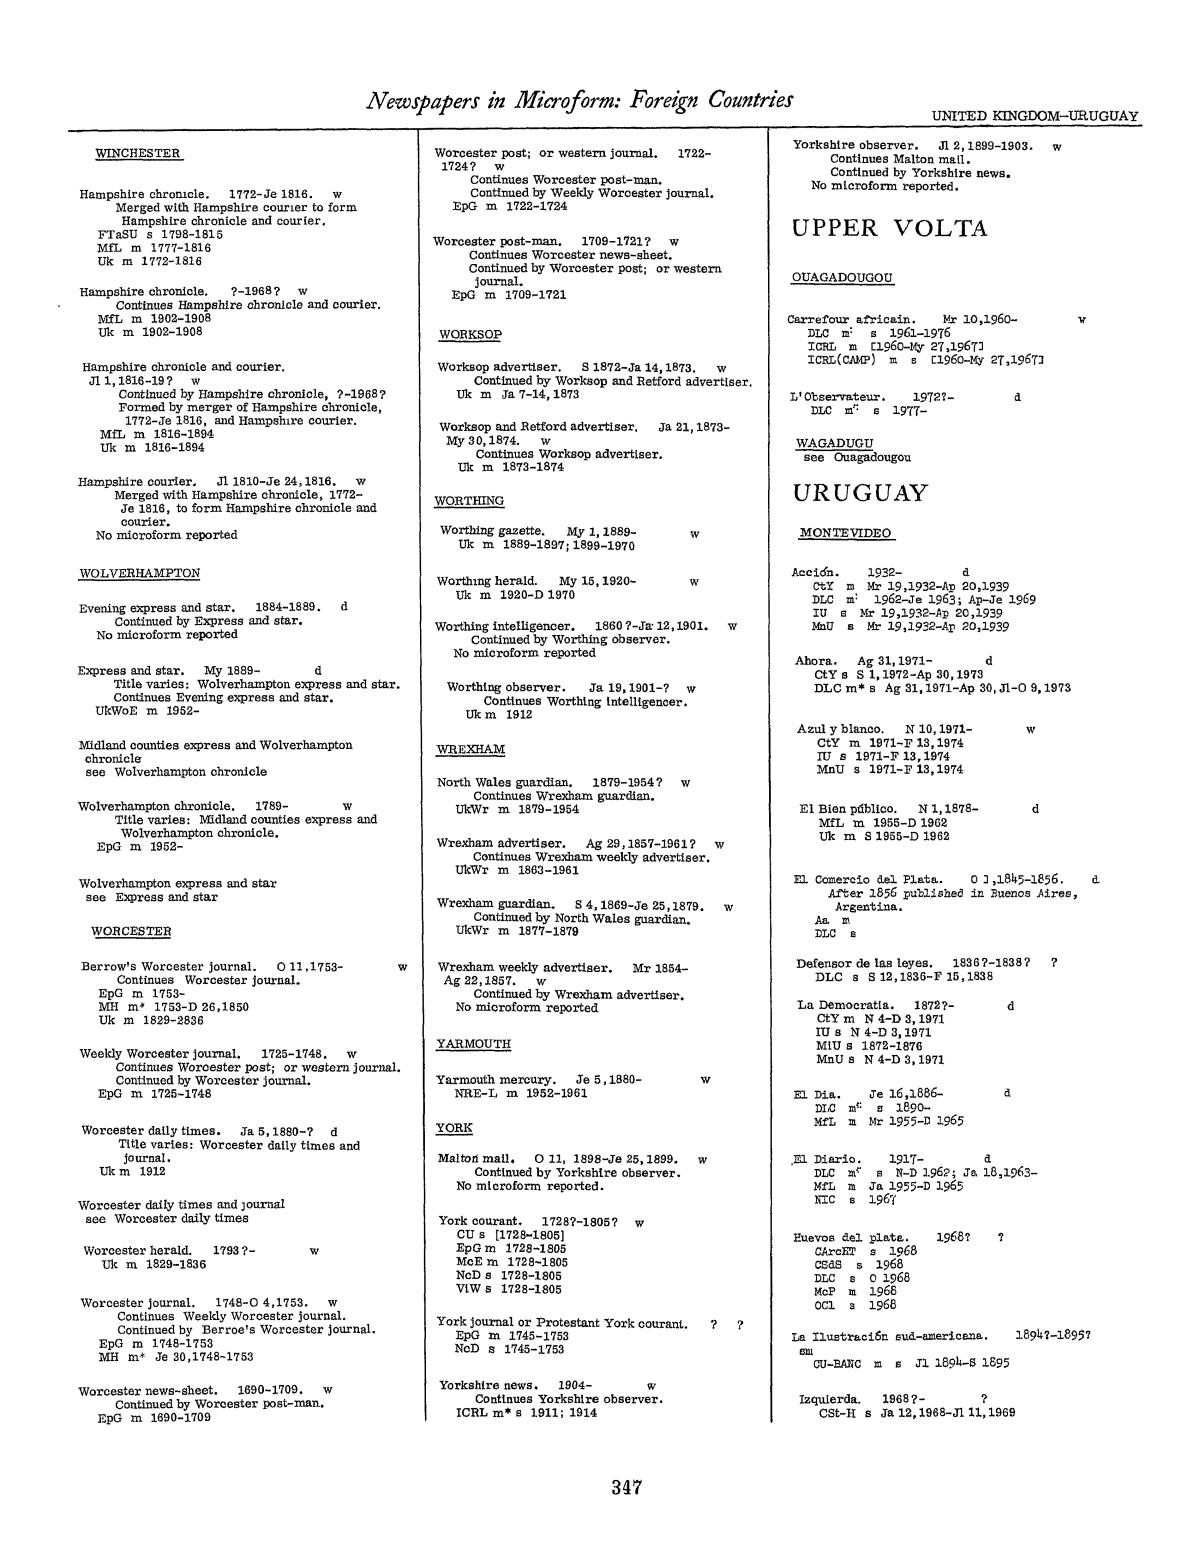 Library Of Congress Catalogs Newspapers In Microform Foreign